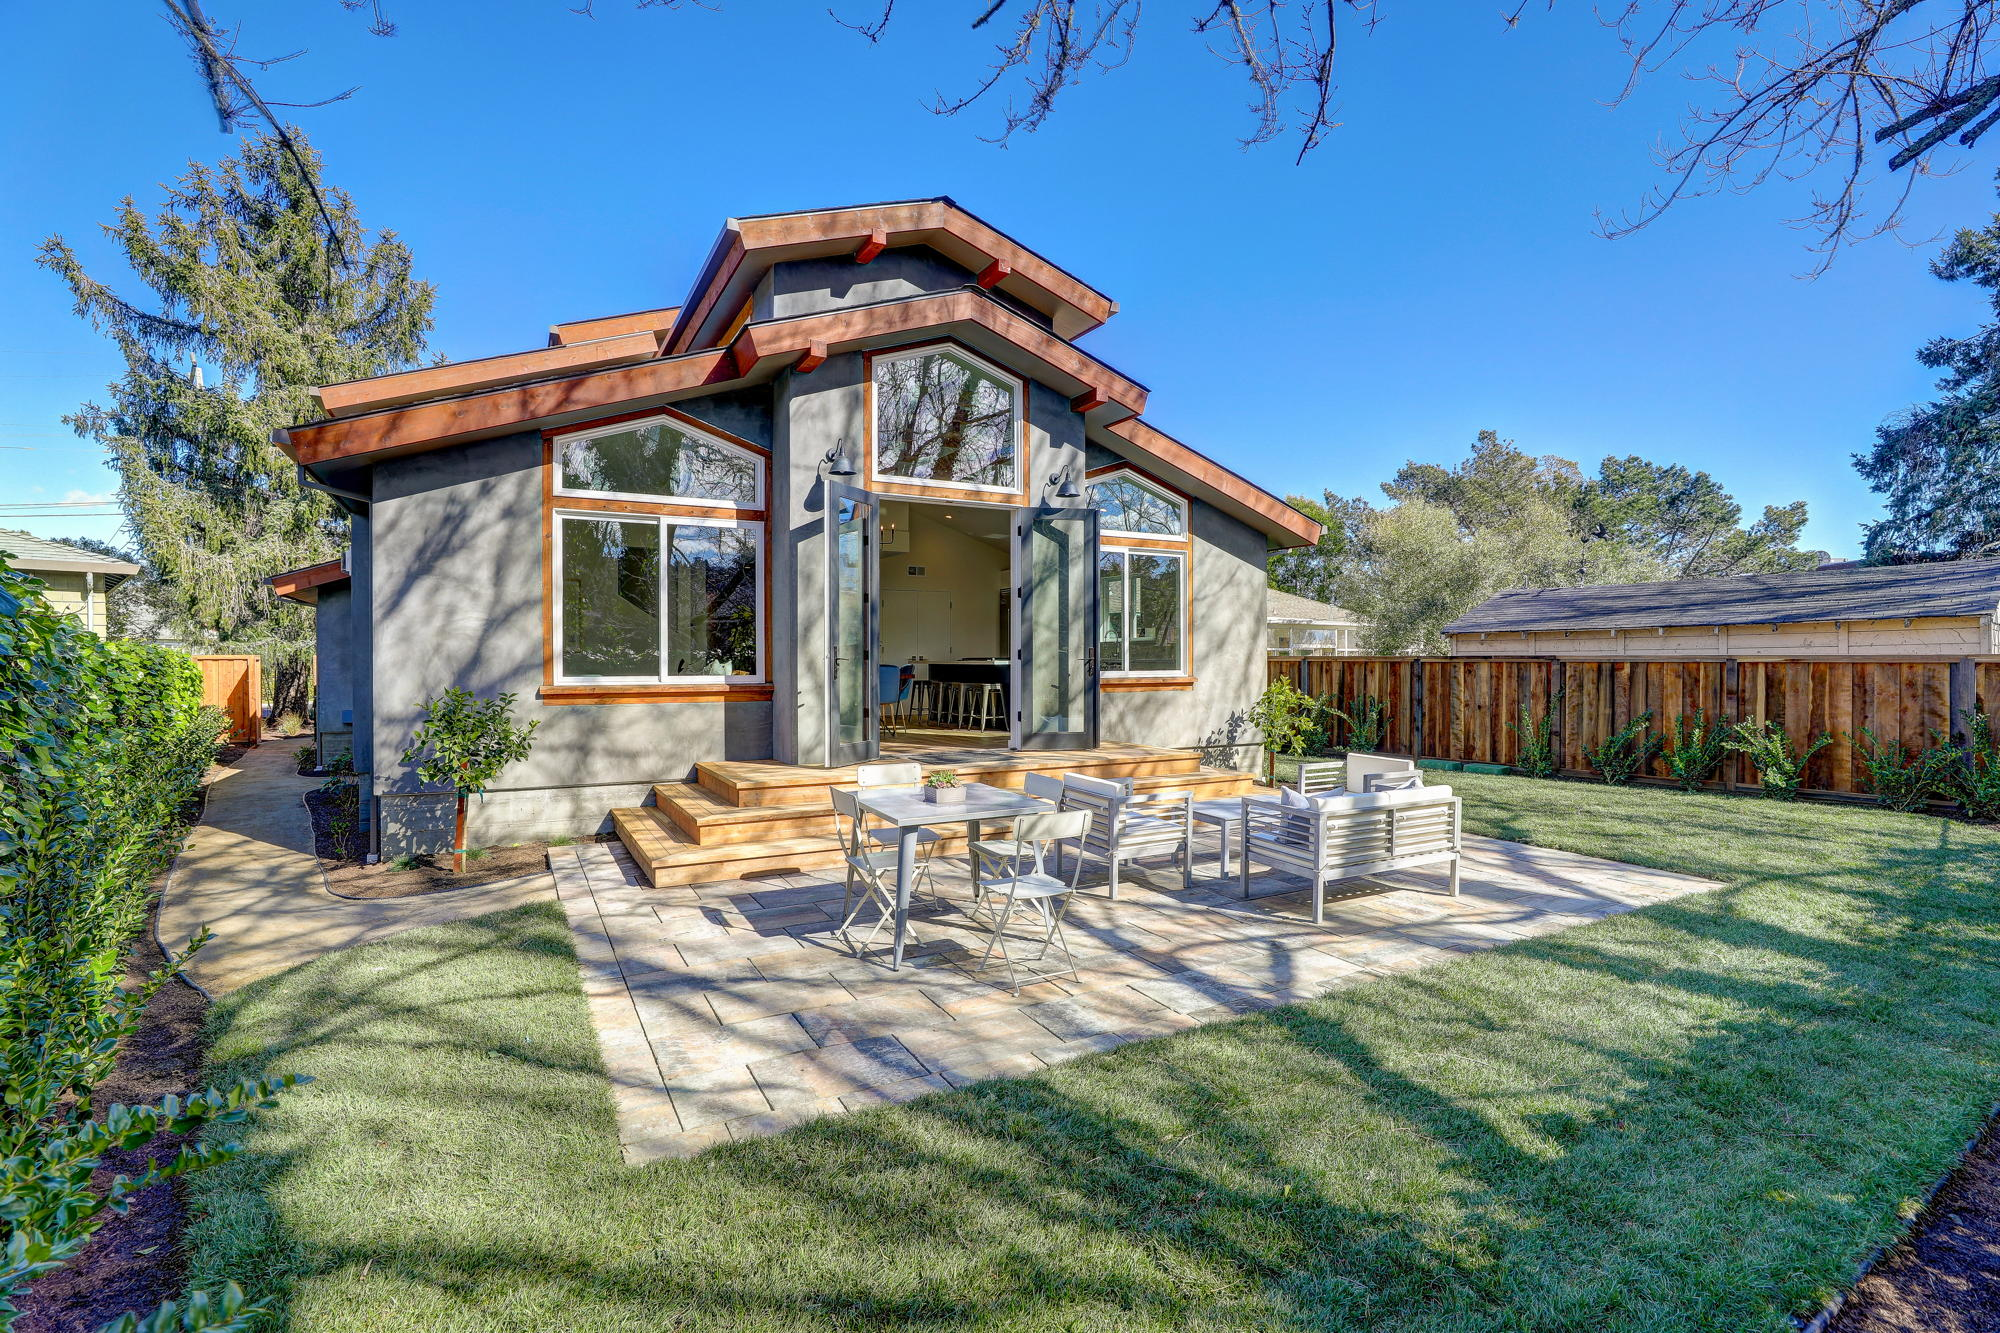 38 Ryan Avenue, Mill Valley - Sycamore Park Homes for sale - 56- Listed by Team Own Marin with Compass Real Estate.jpg